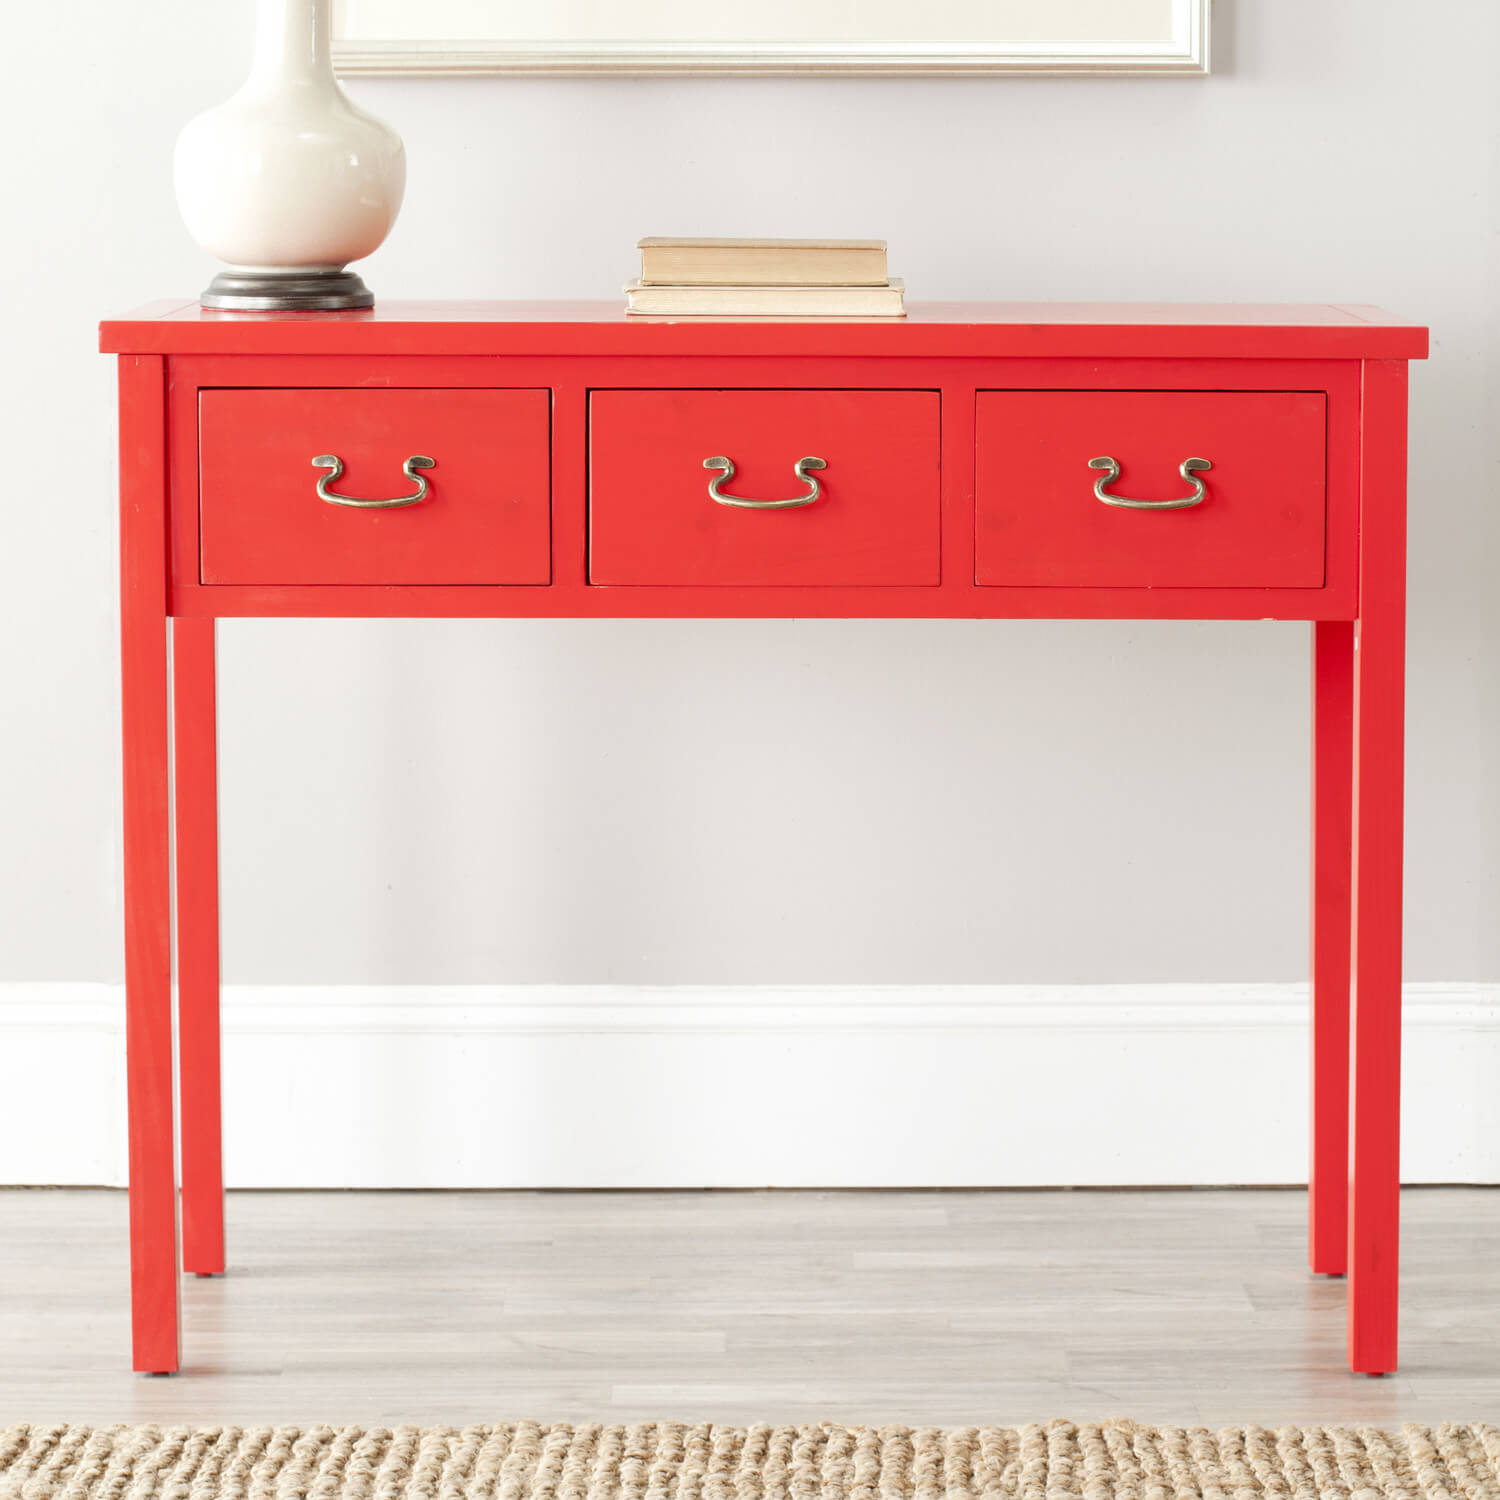 A console table is as at home in the foyer as it is in the living room, featuring three pull out drawers with brass handles and a bright red facade. This table is taller and longer, suitable for a long hallway.